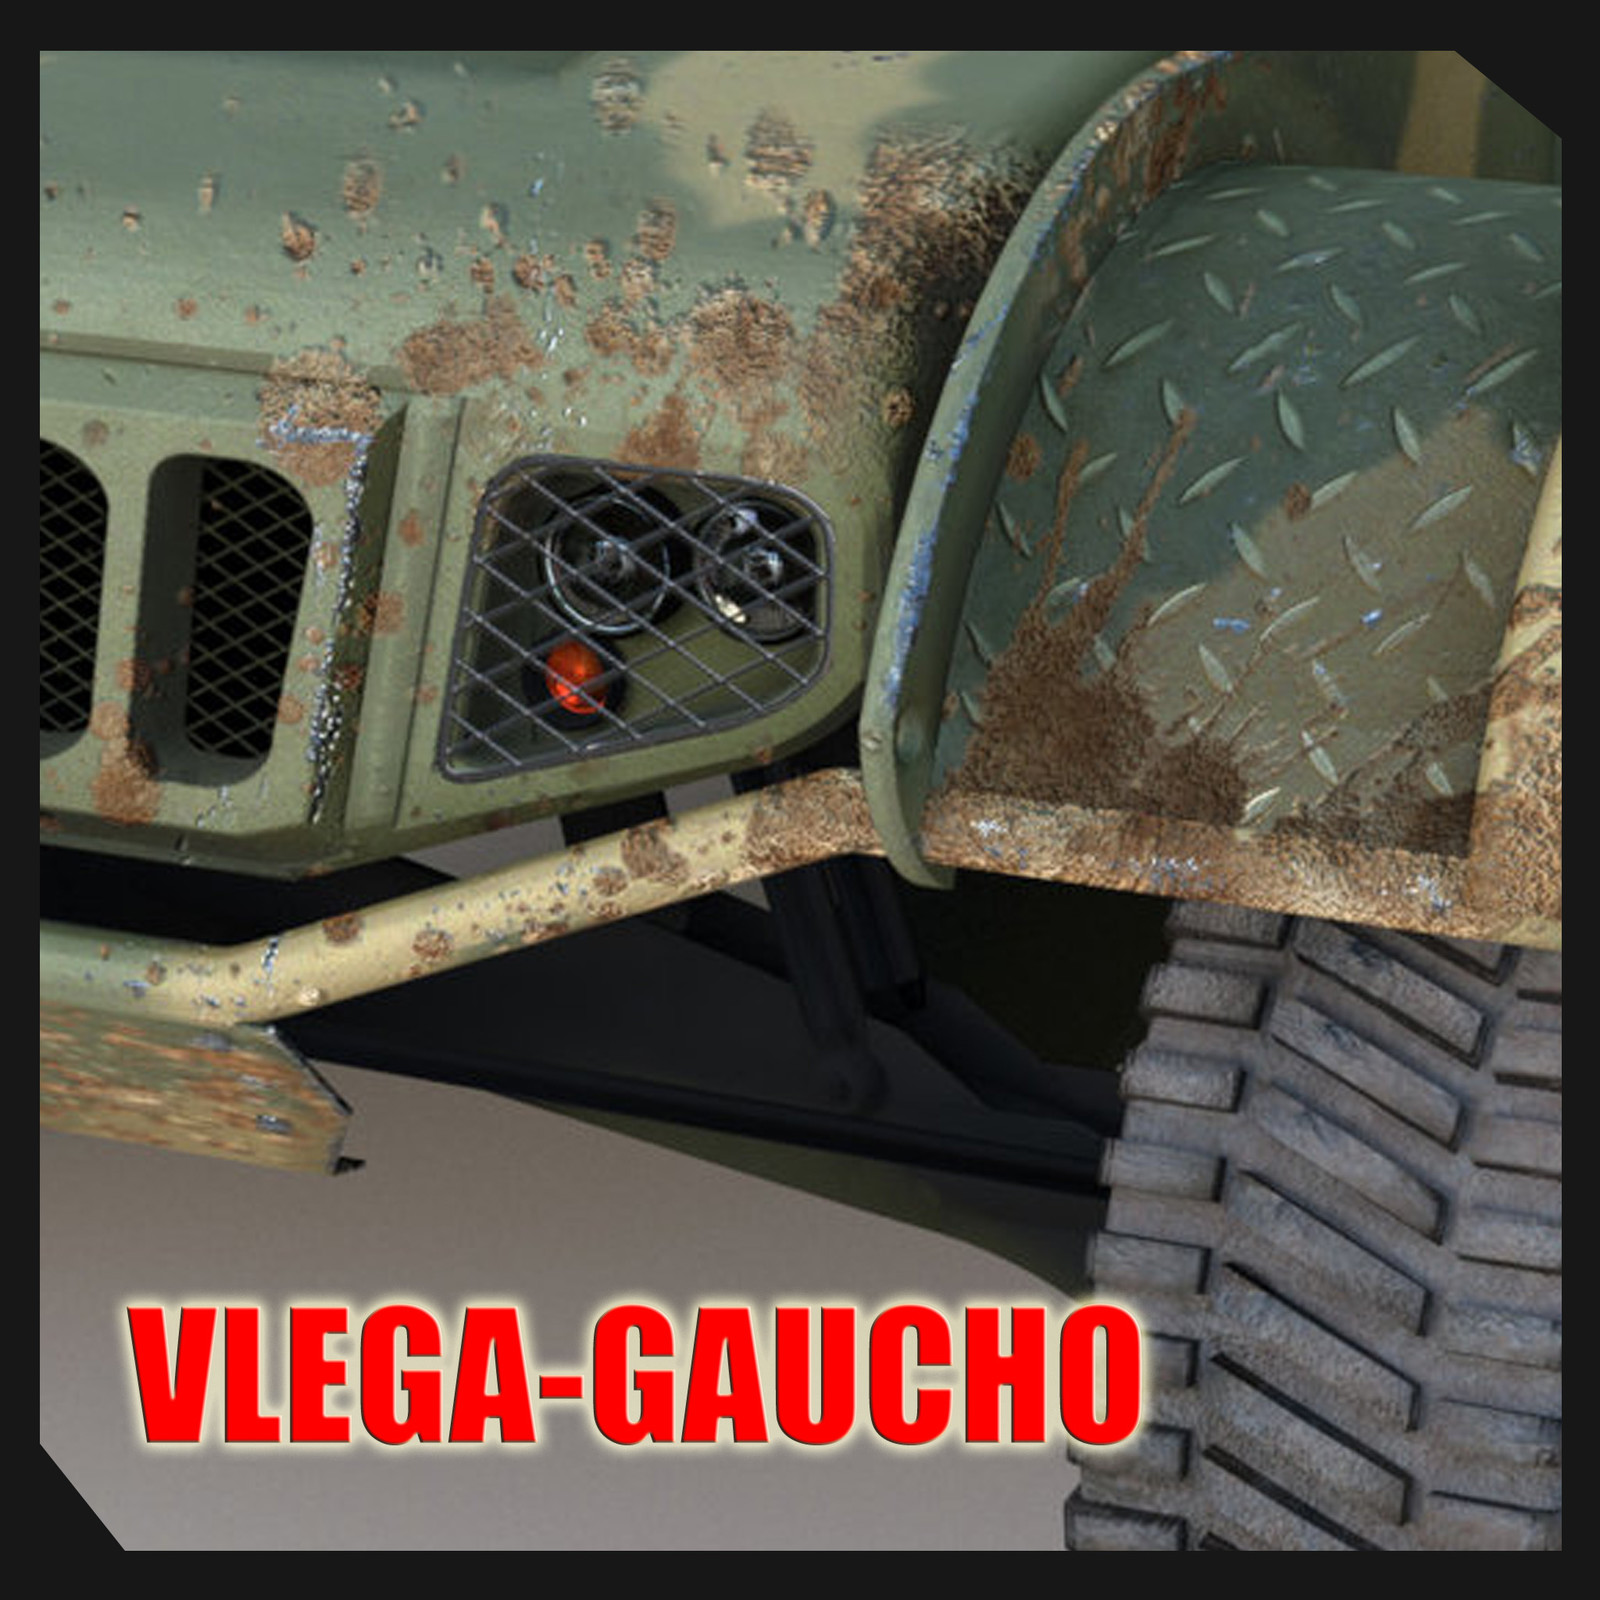 Light Vehicle Gaucho By Sergio Mengual